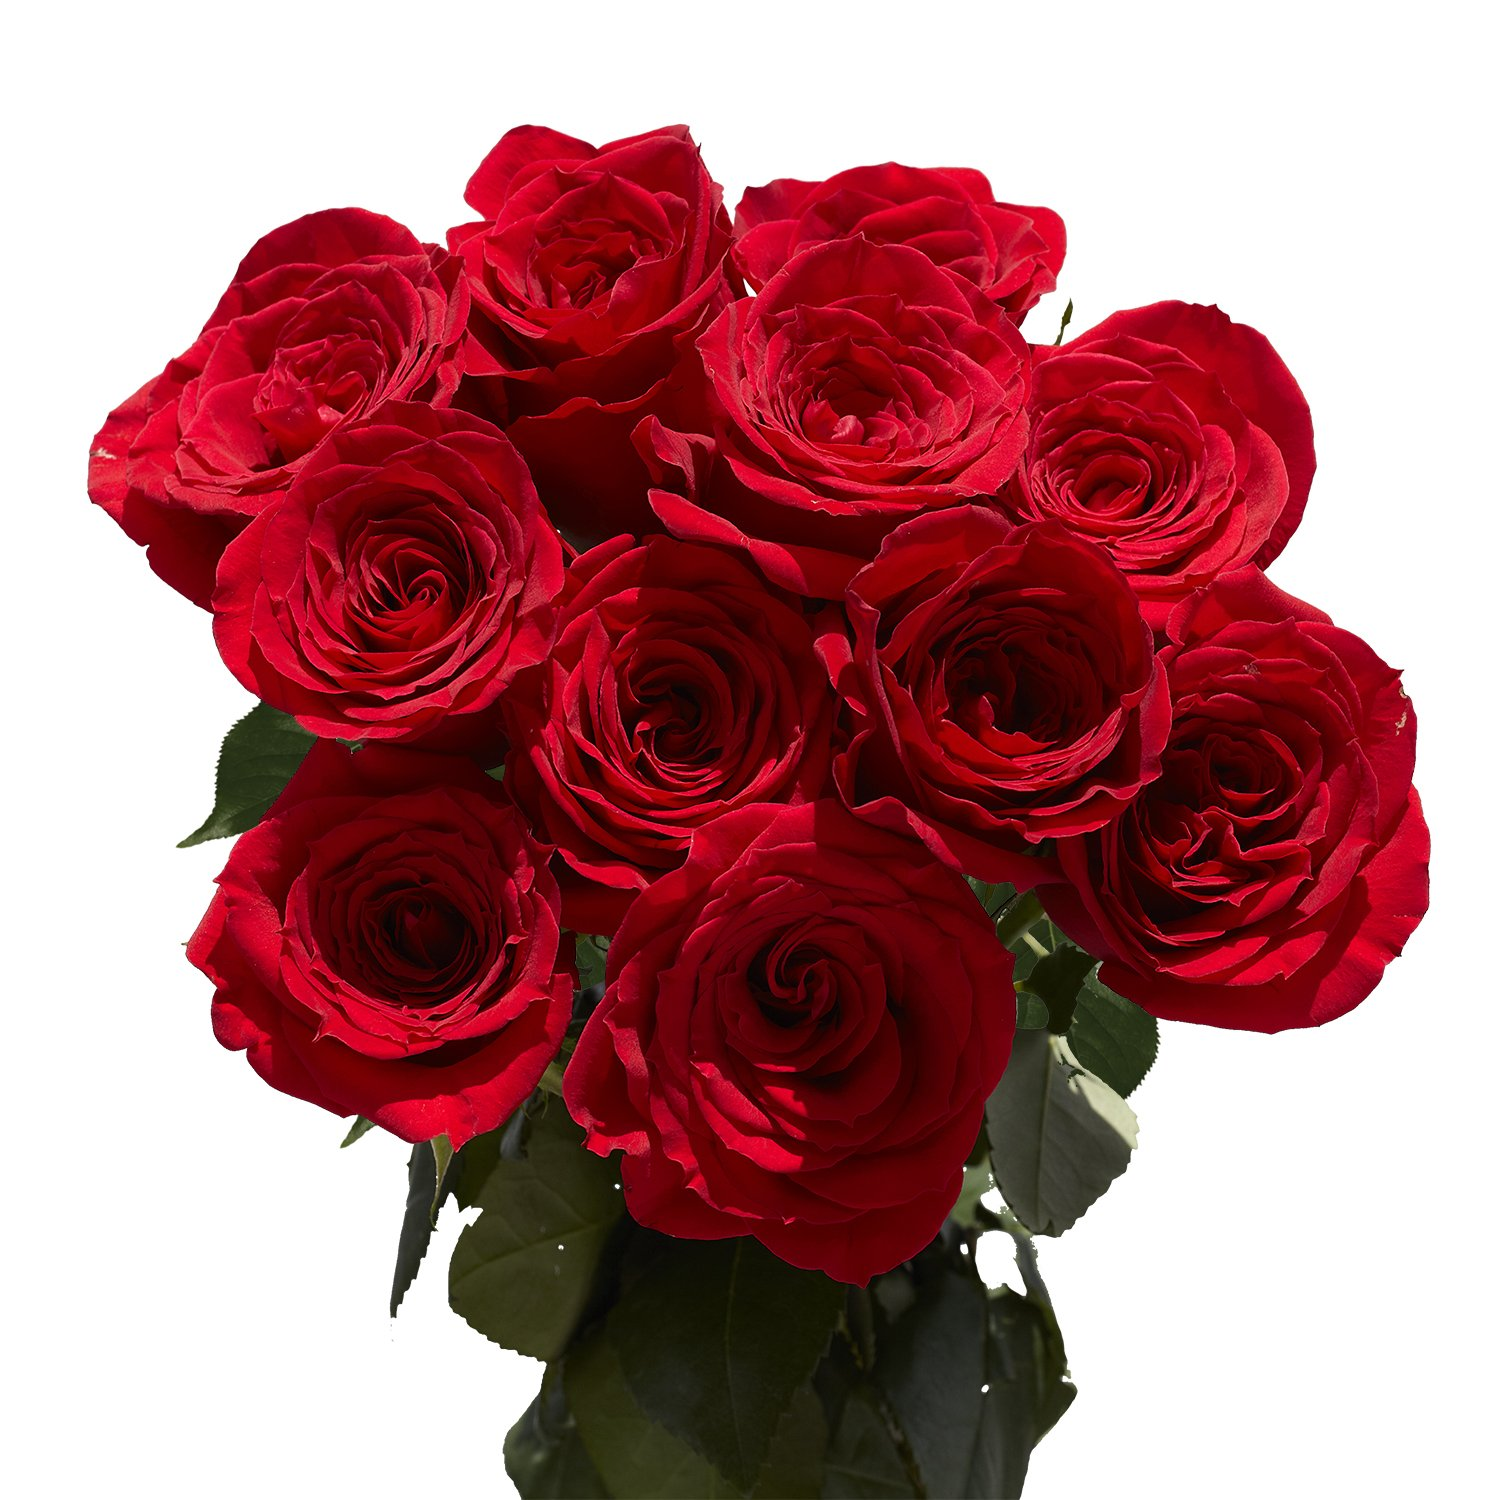 Amazon globalrose fresh 50 red roses long stem flower amazon globalrose fresh 50 red roses long stem flower delivery grocery gourmet food izmirmasajfo